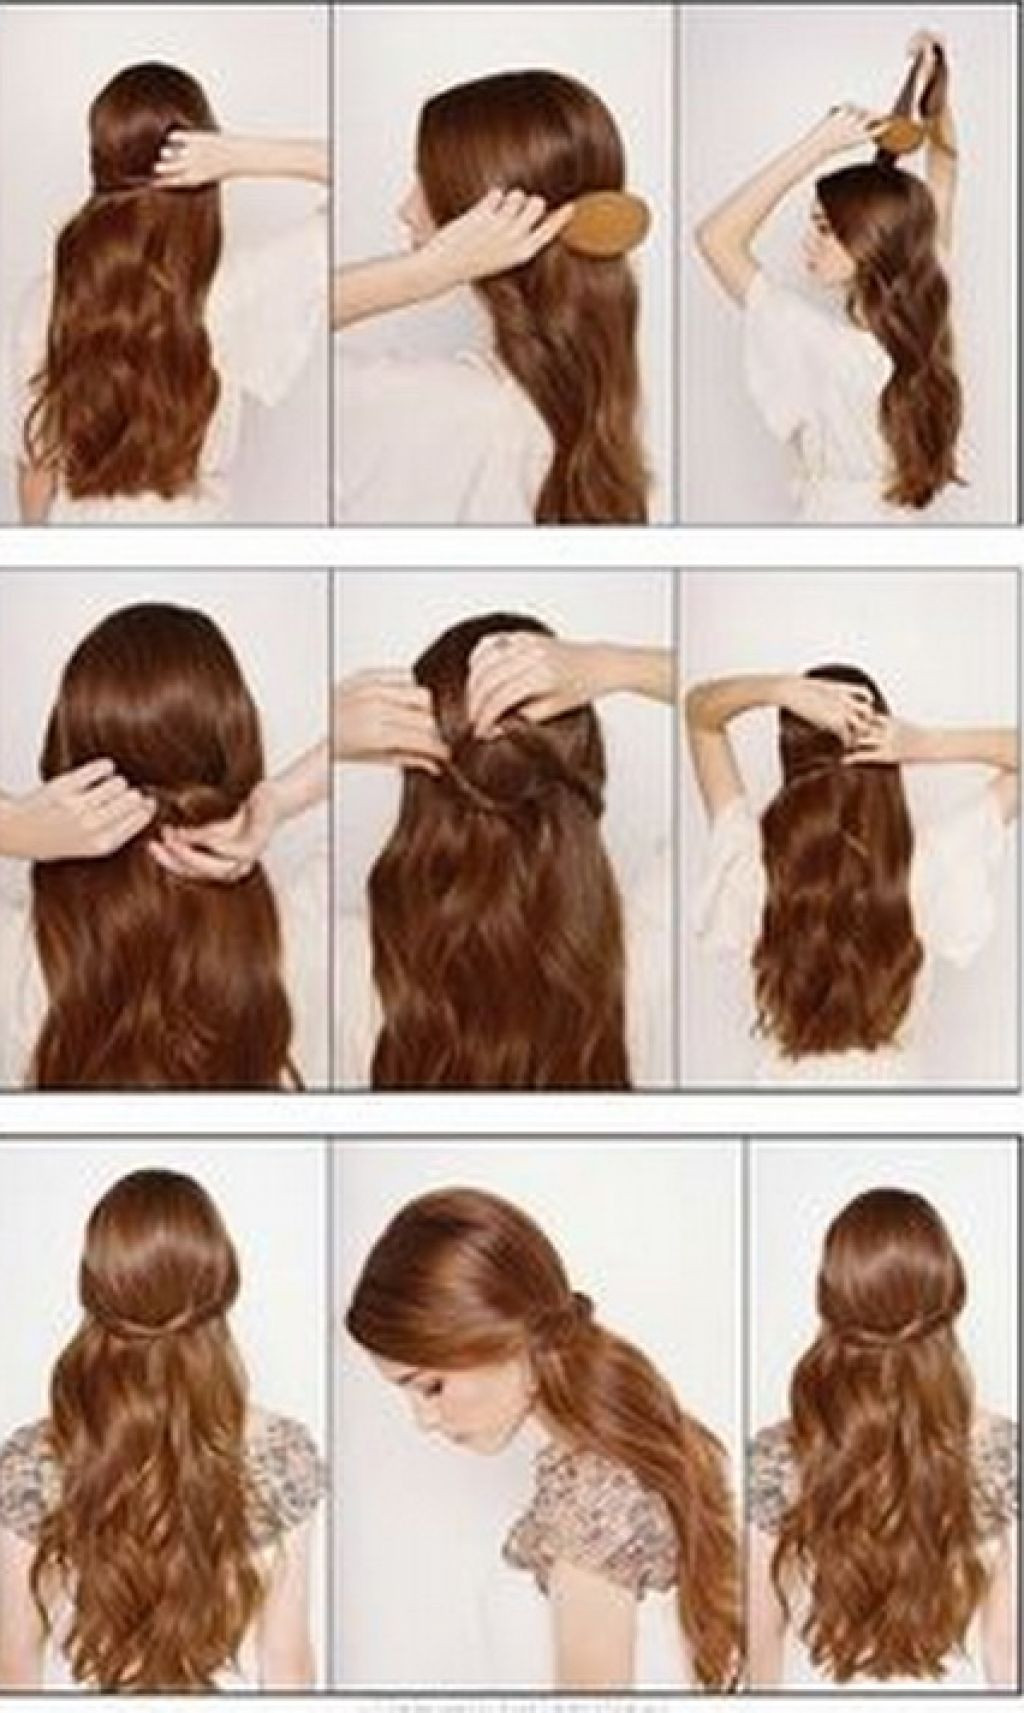 Cute And Fast Hairstyles  Cute Fast And Easy Hairstyles